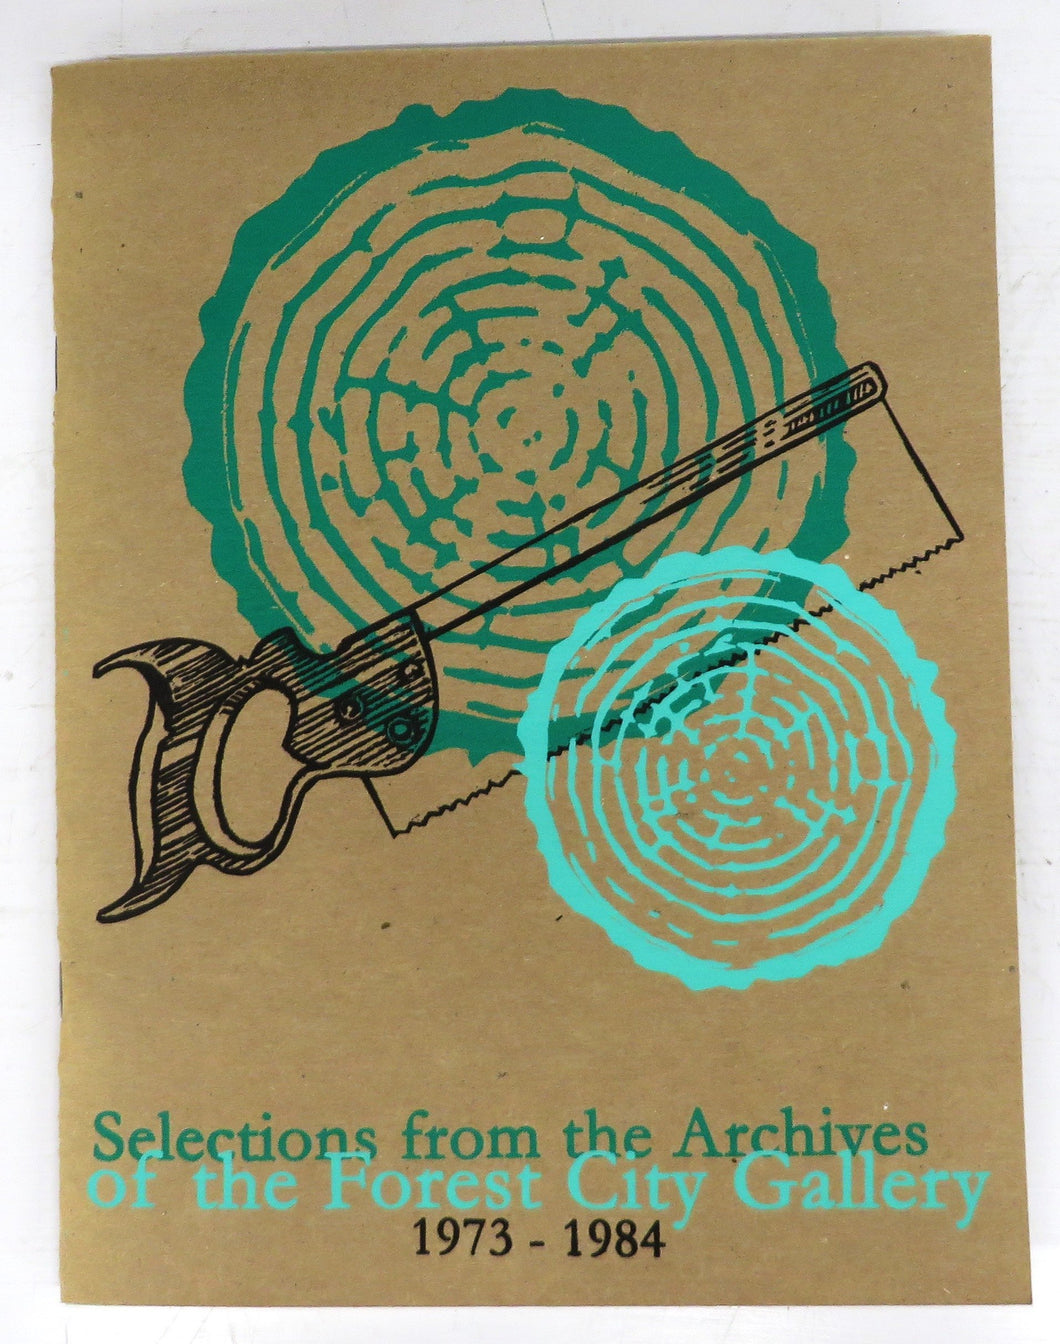 Selections from the Archives of the Forest City Gallery 1973-1984